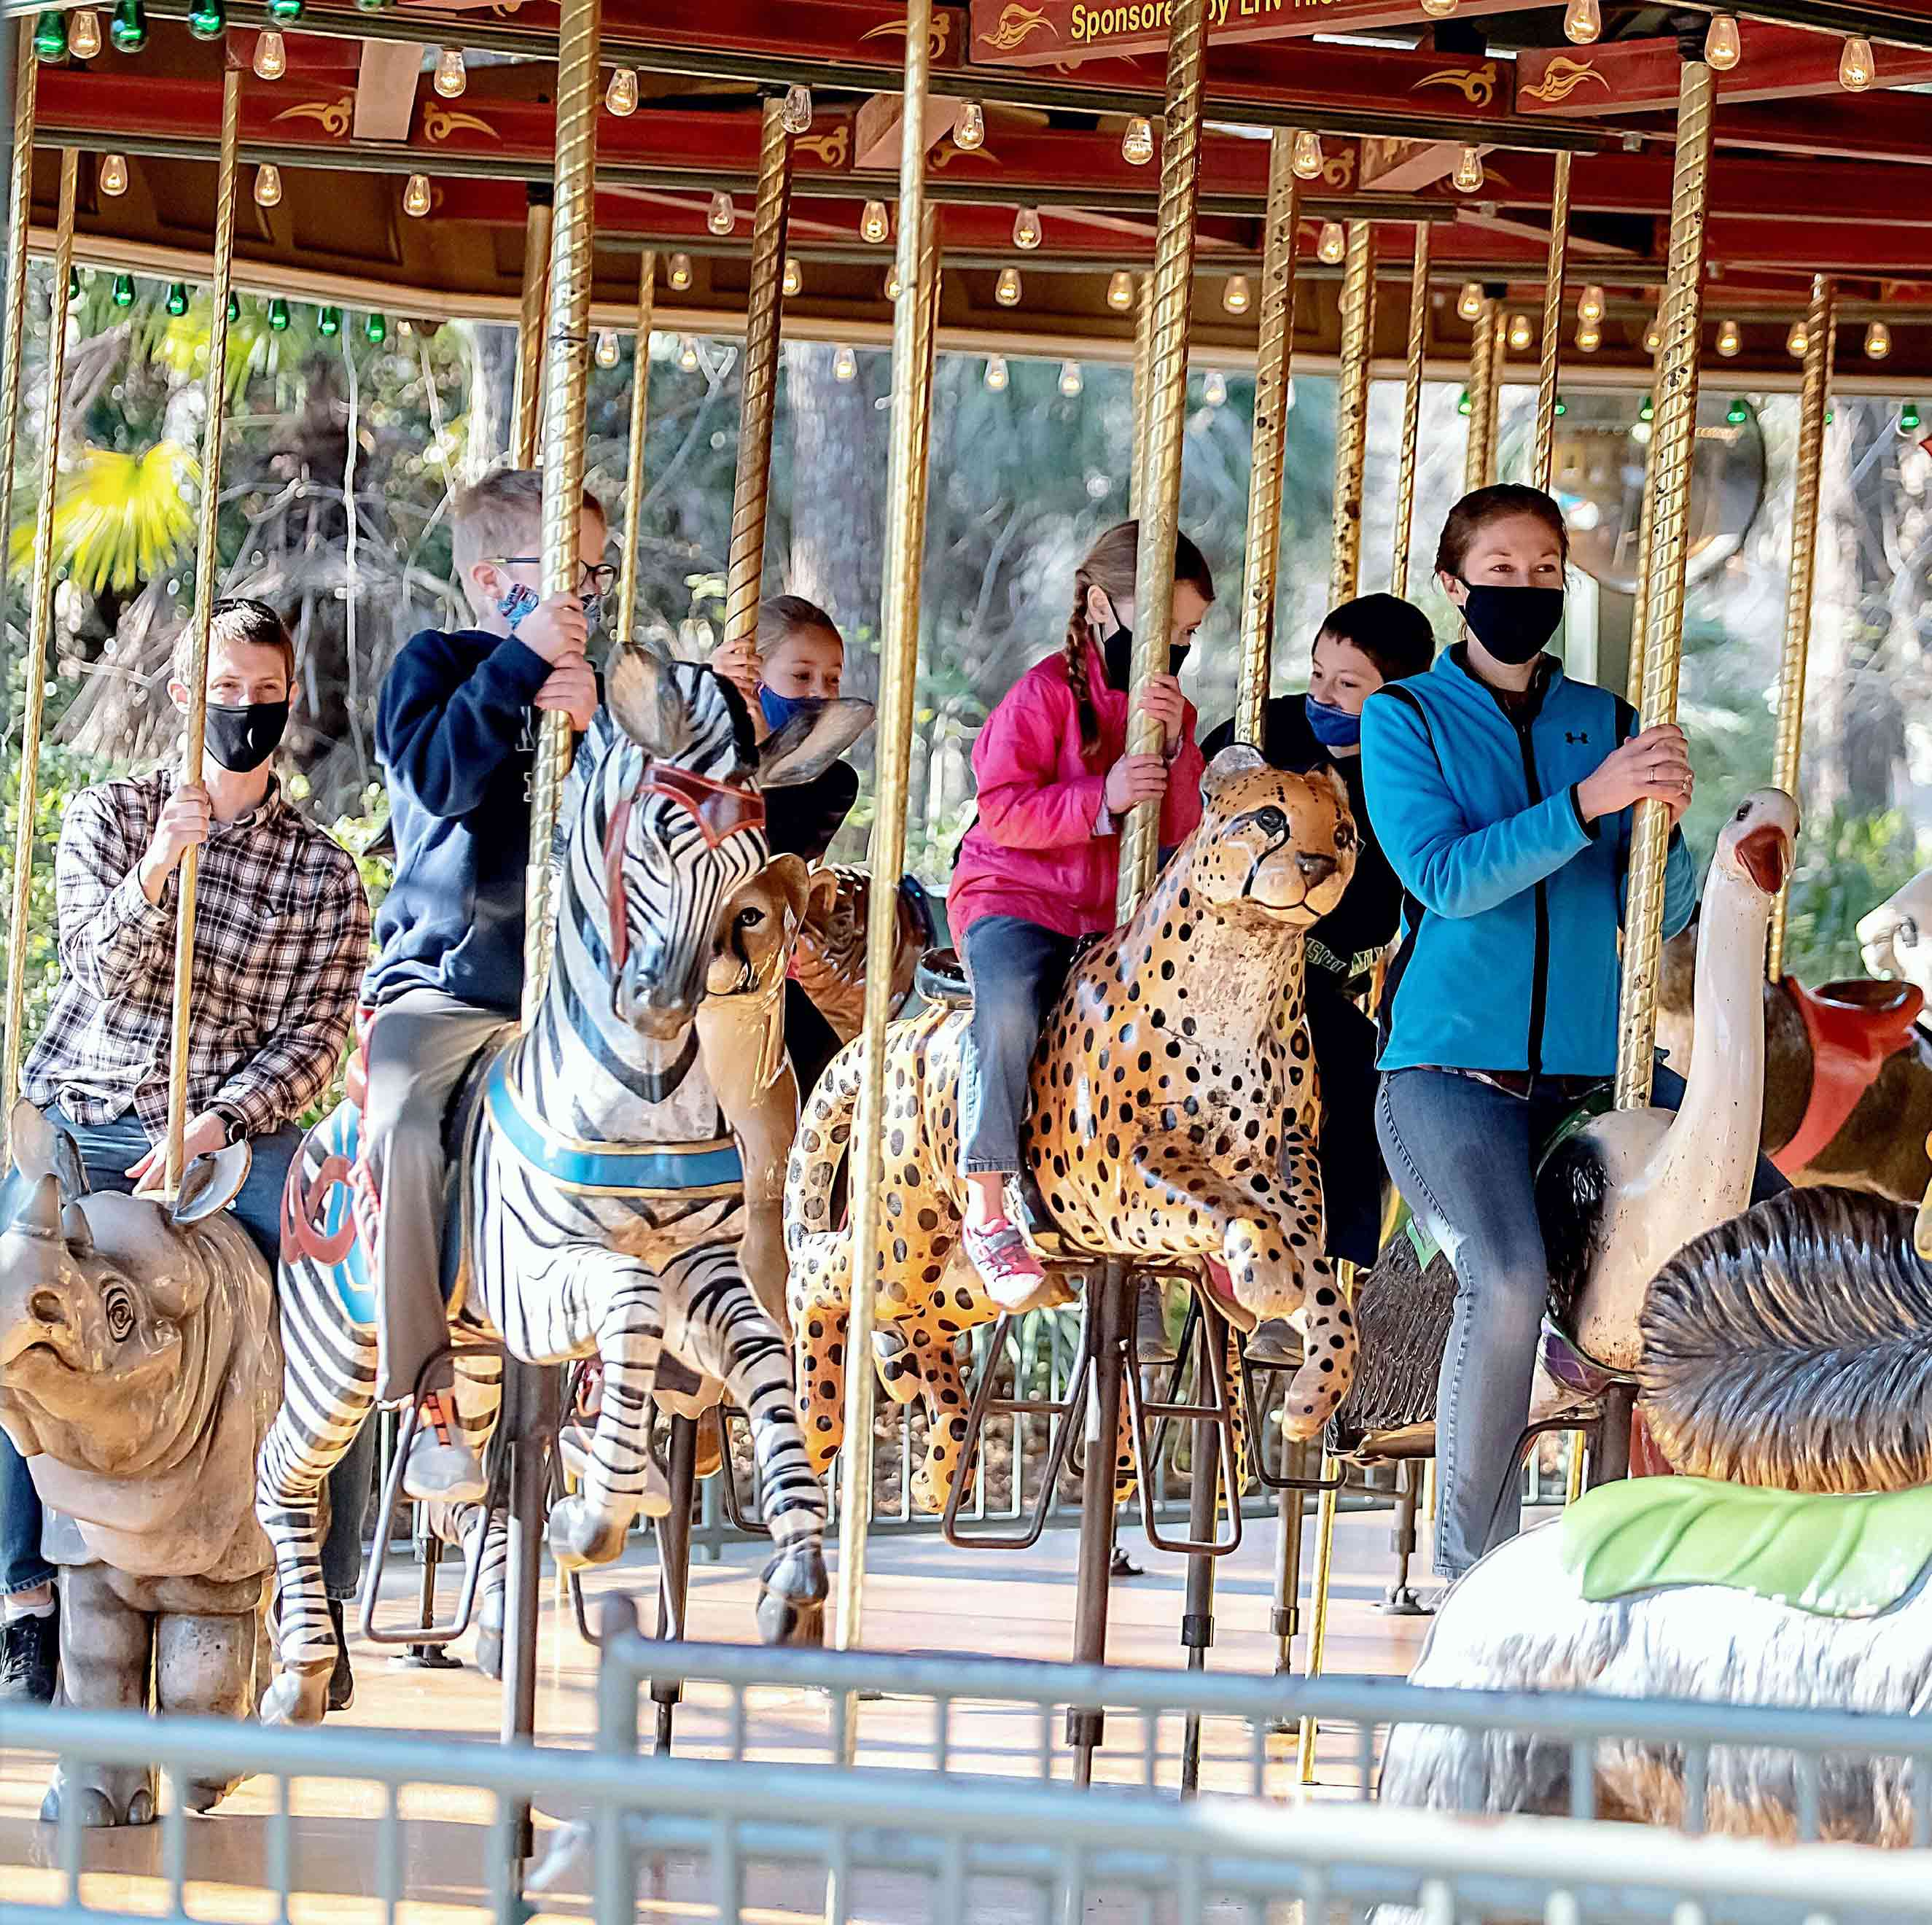 Guests riding the carousel at Riverbanks Zoo and Garden